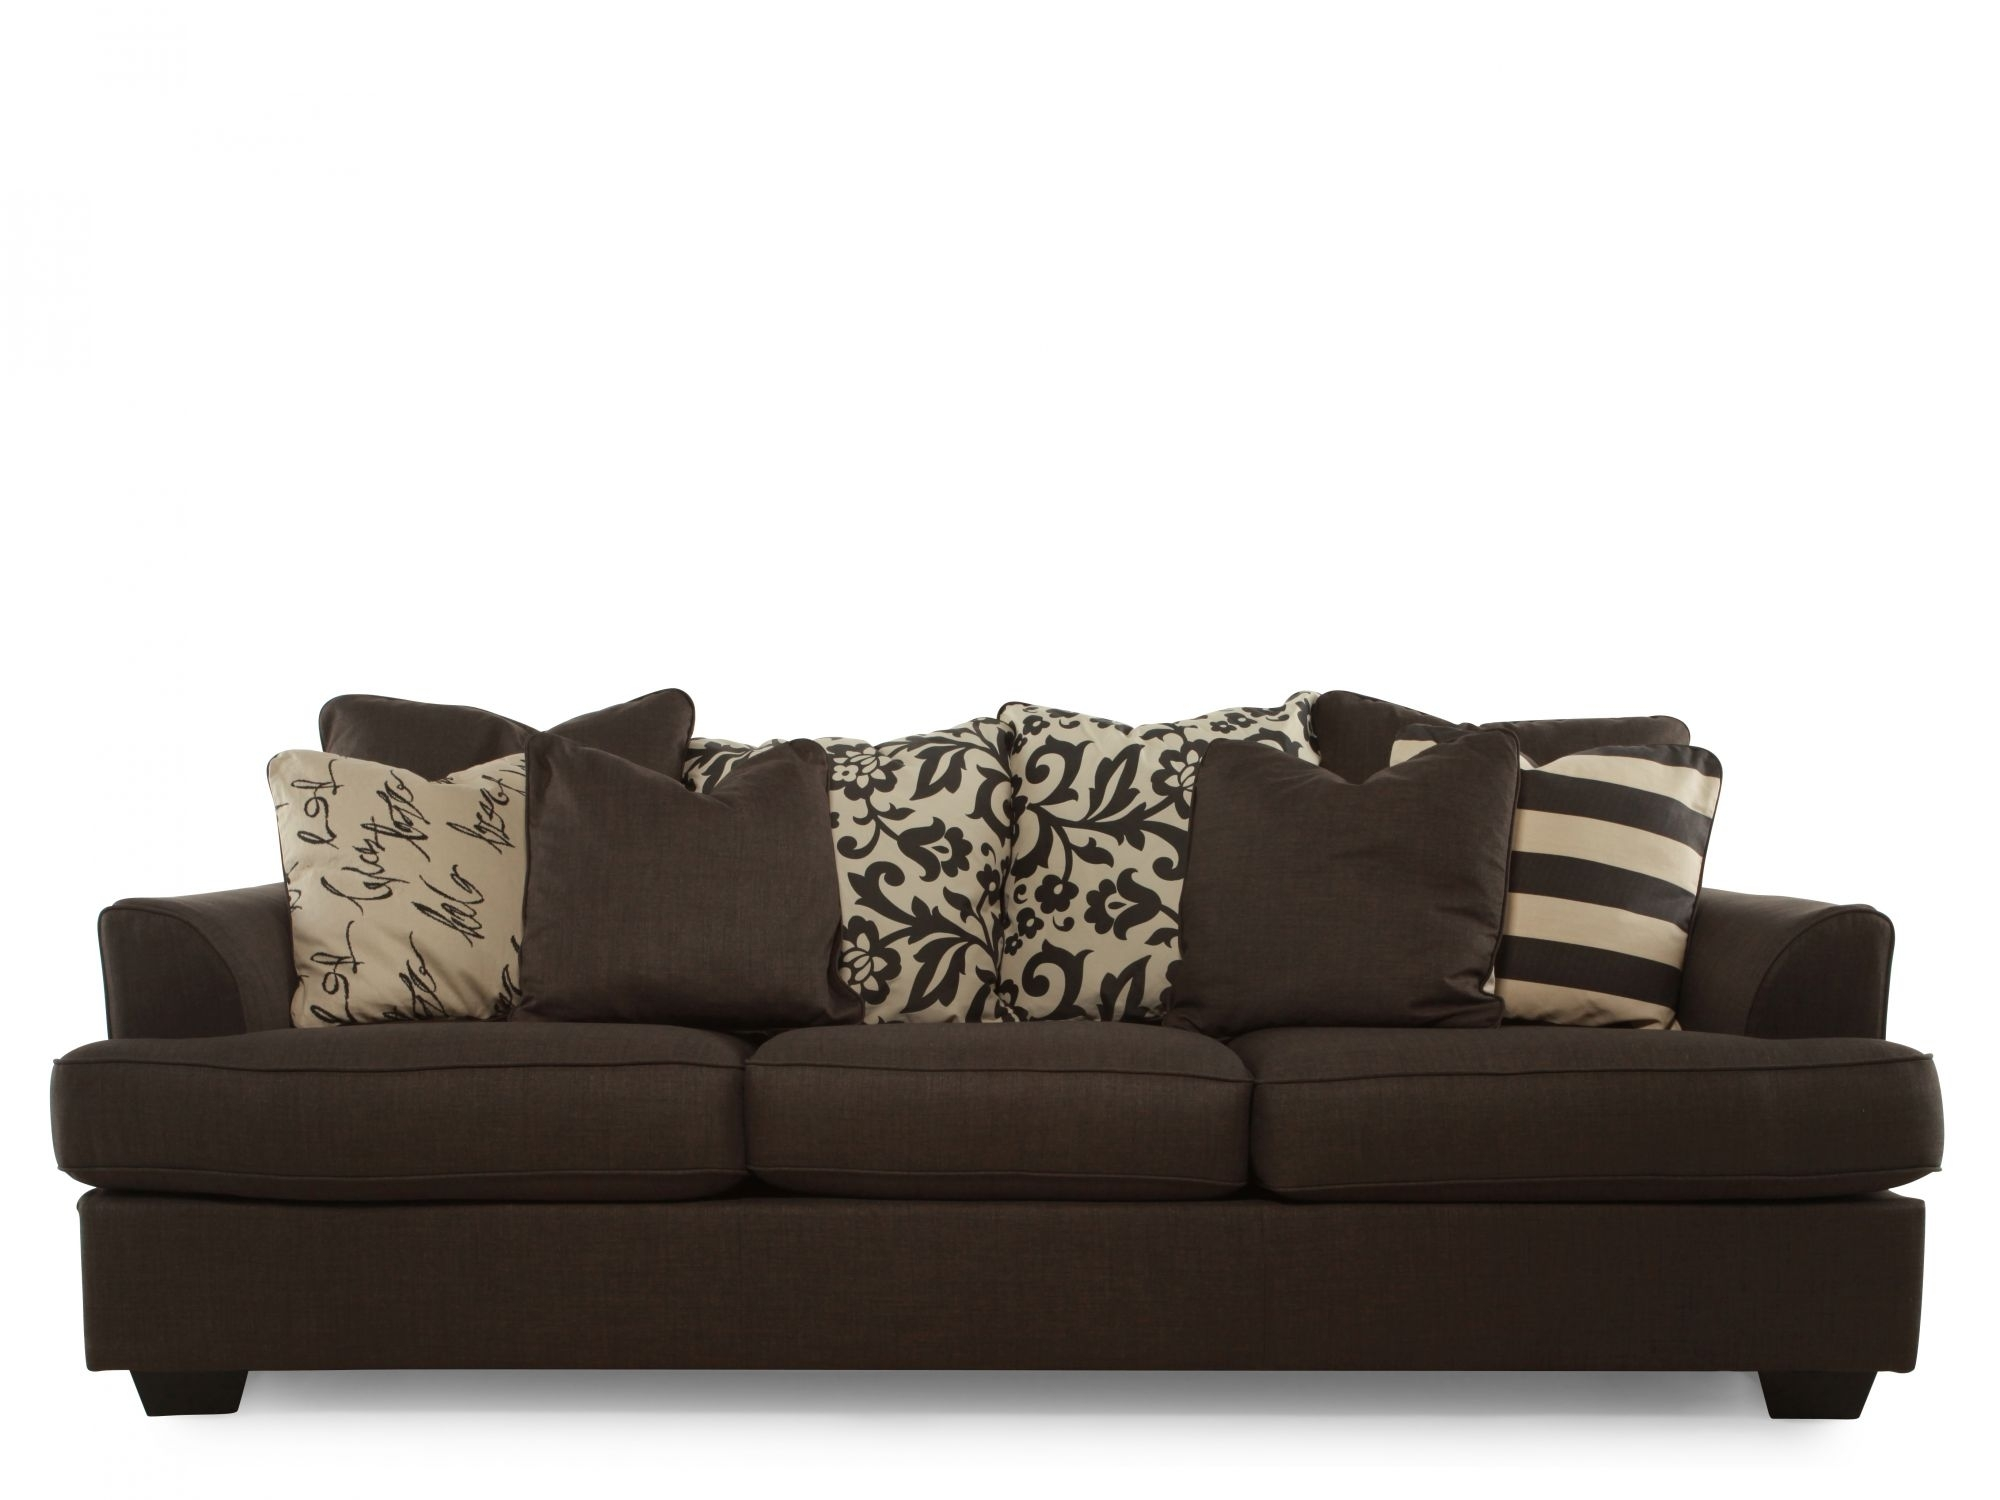 Ash C 1660138 – Ashley Alenya Charcoal Sofa | Mathis Brothers In Mathis Brothers Sectional Sofas (View 9 of 10)